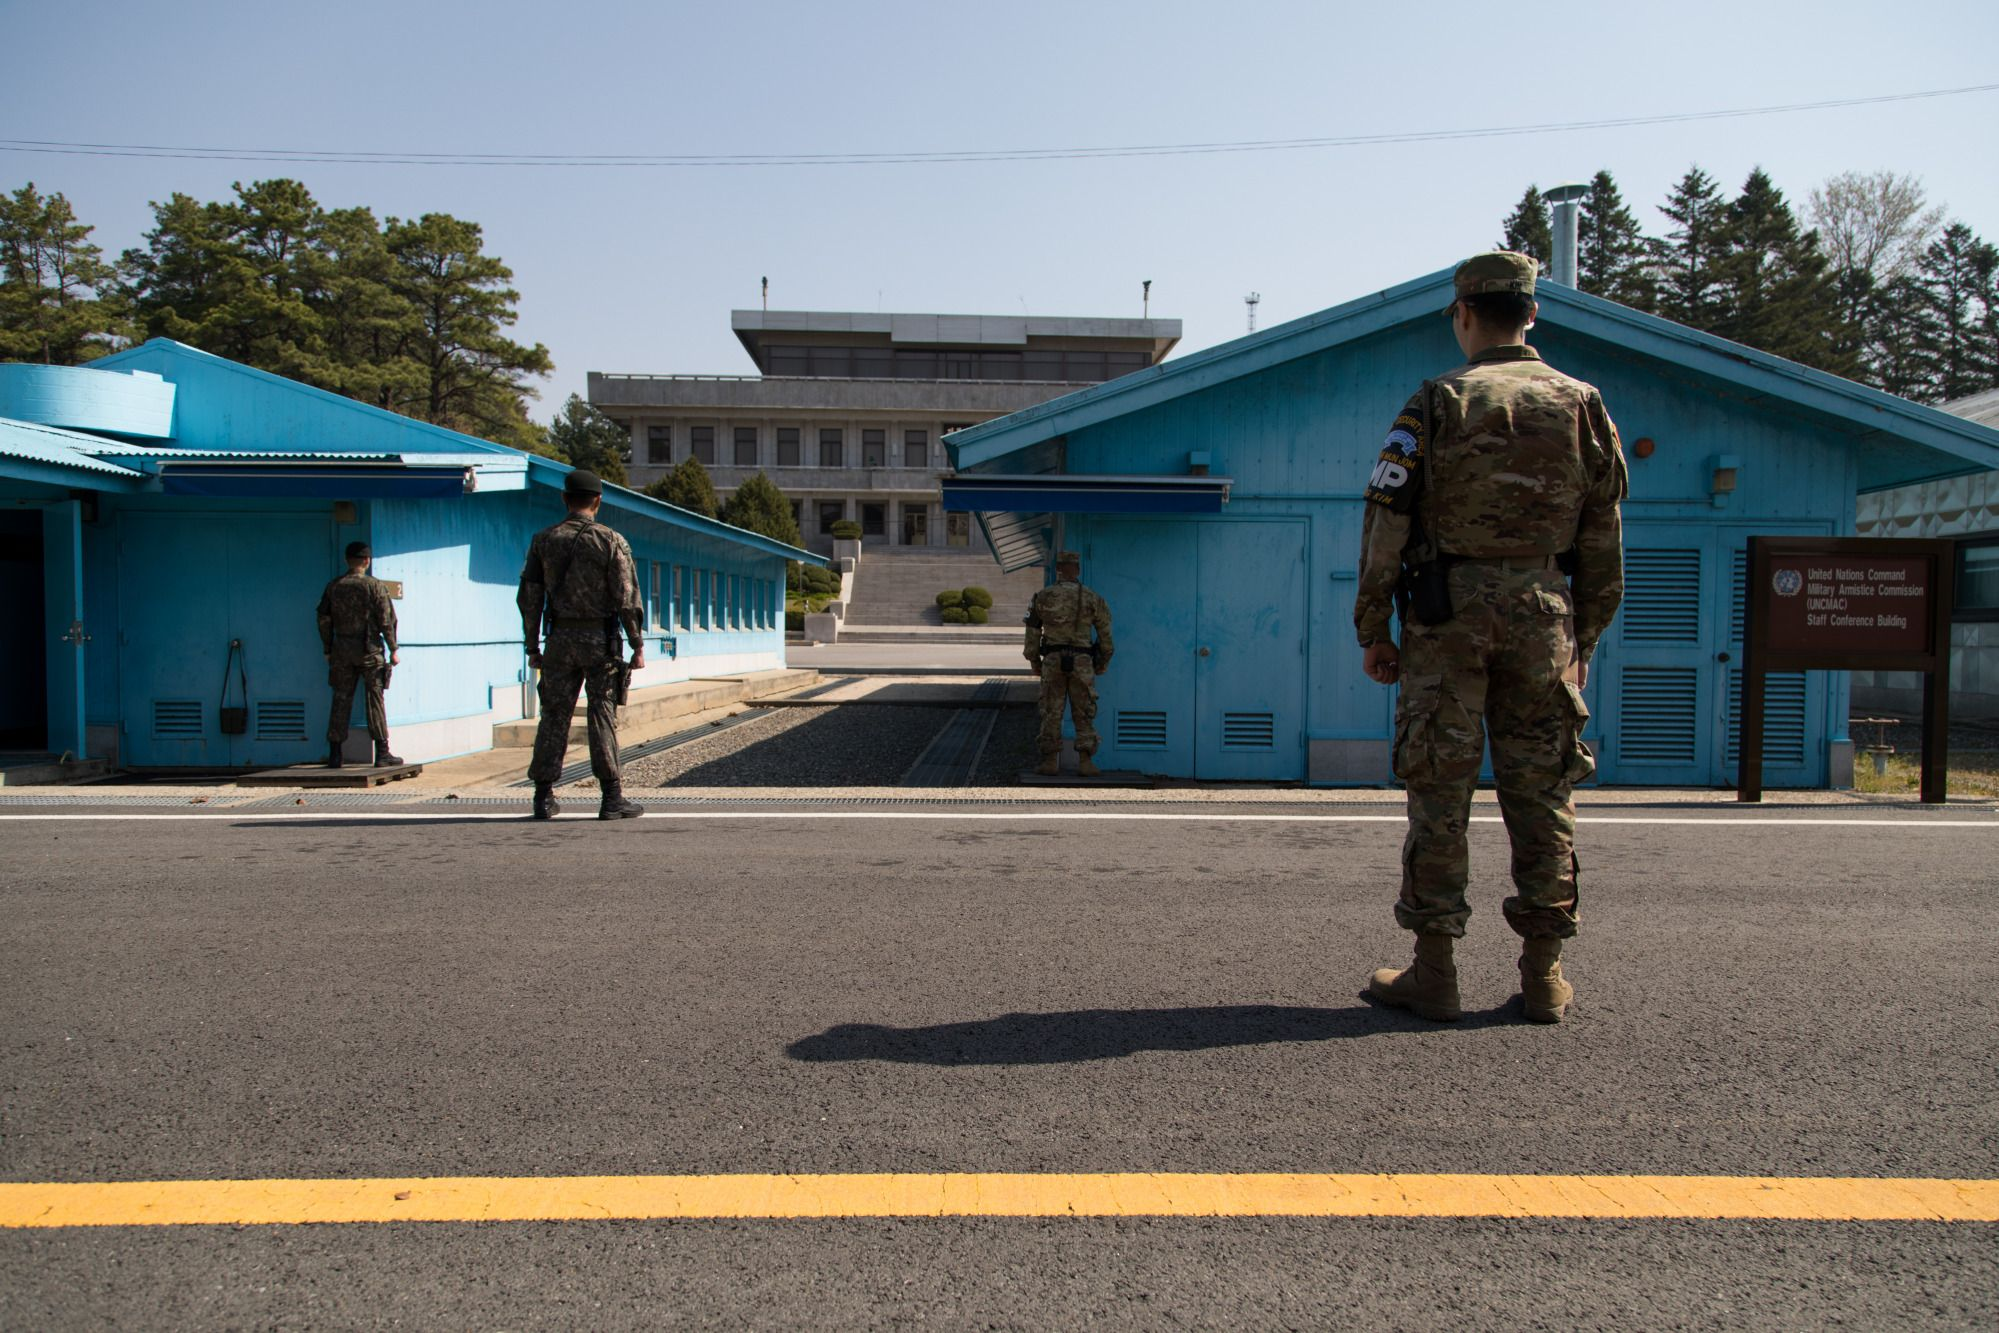 U.S. Military Sends Furlough Warnings to Civilian Korean Staff